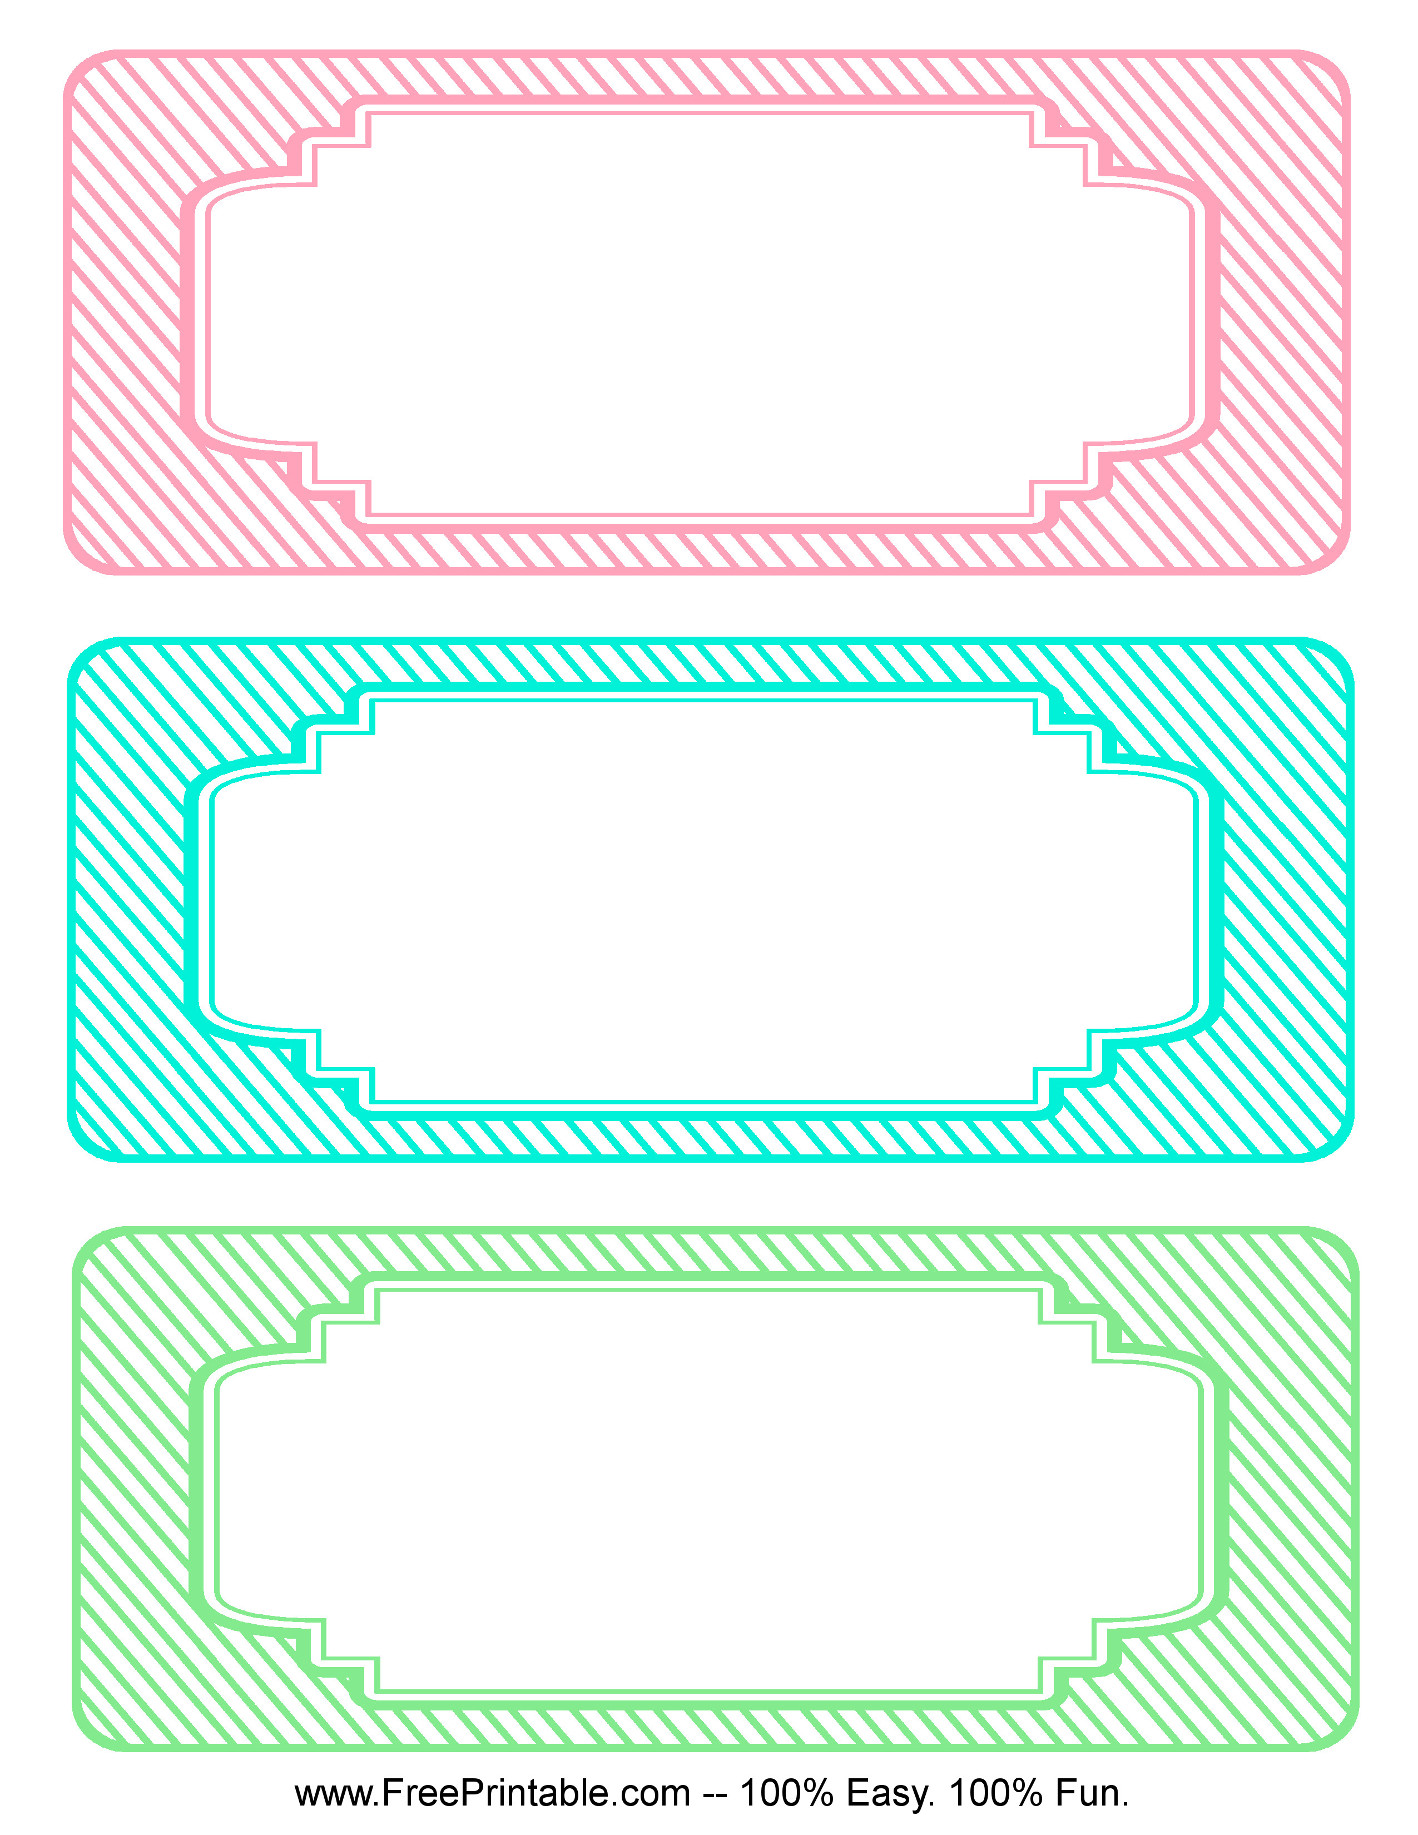 Customize Your Free Printable Blank Striped Classroom Labels